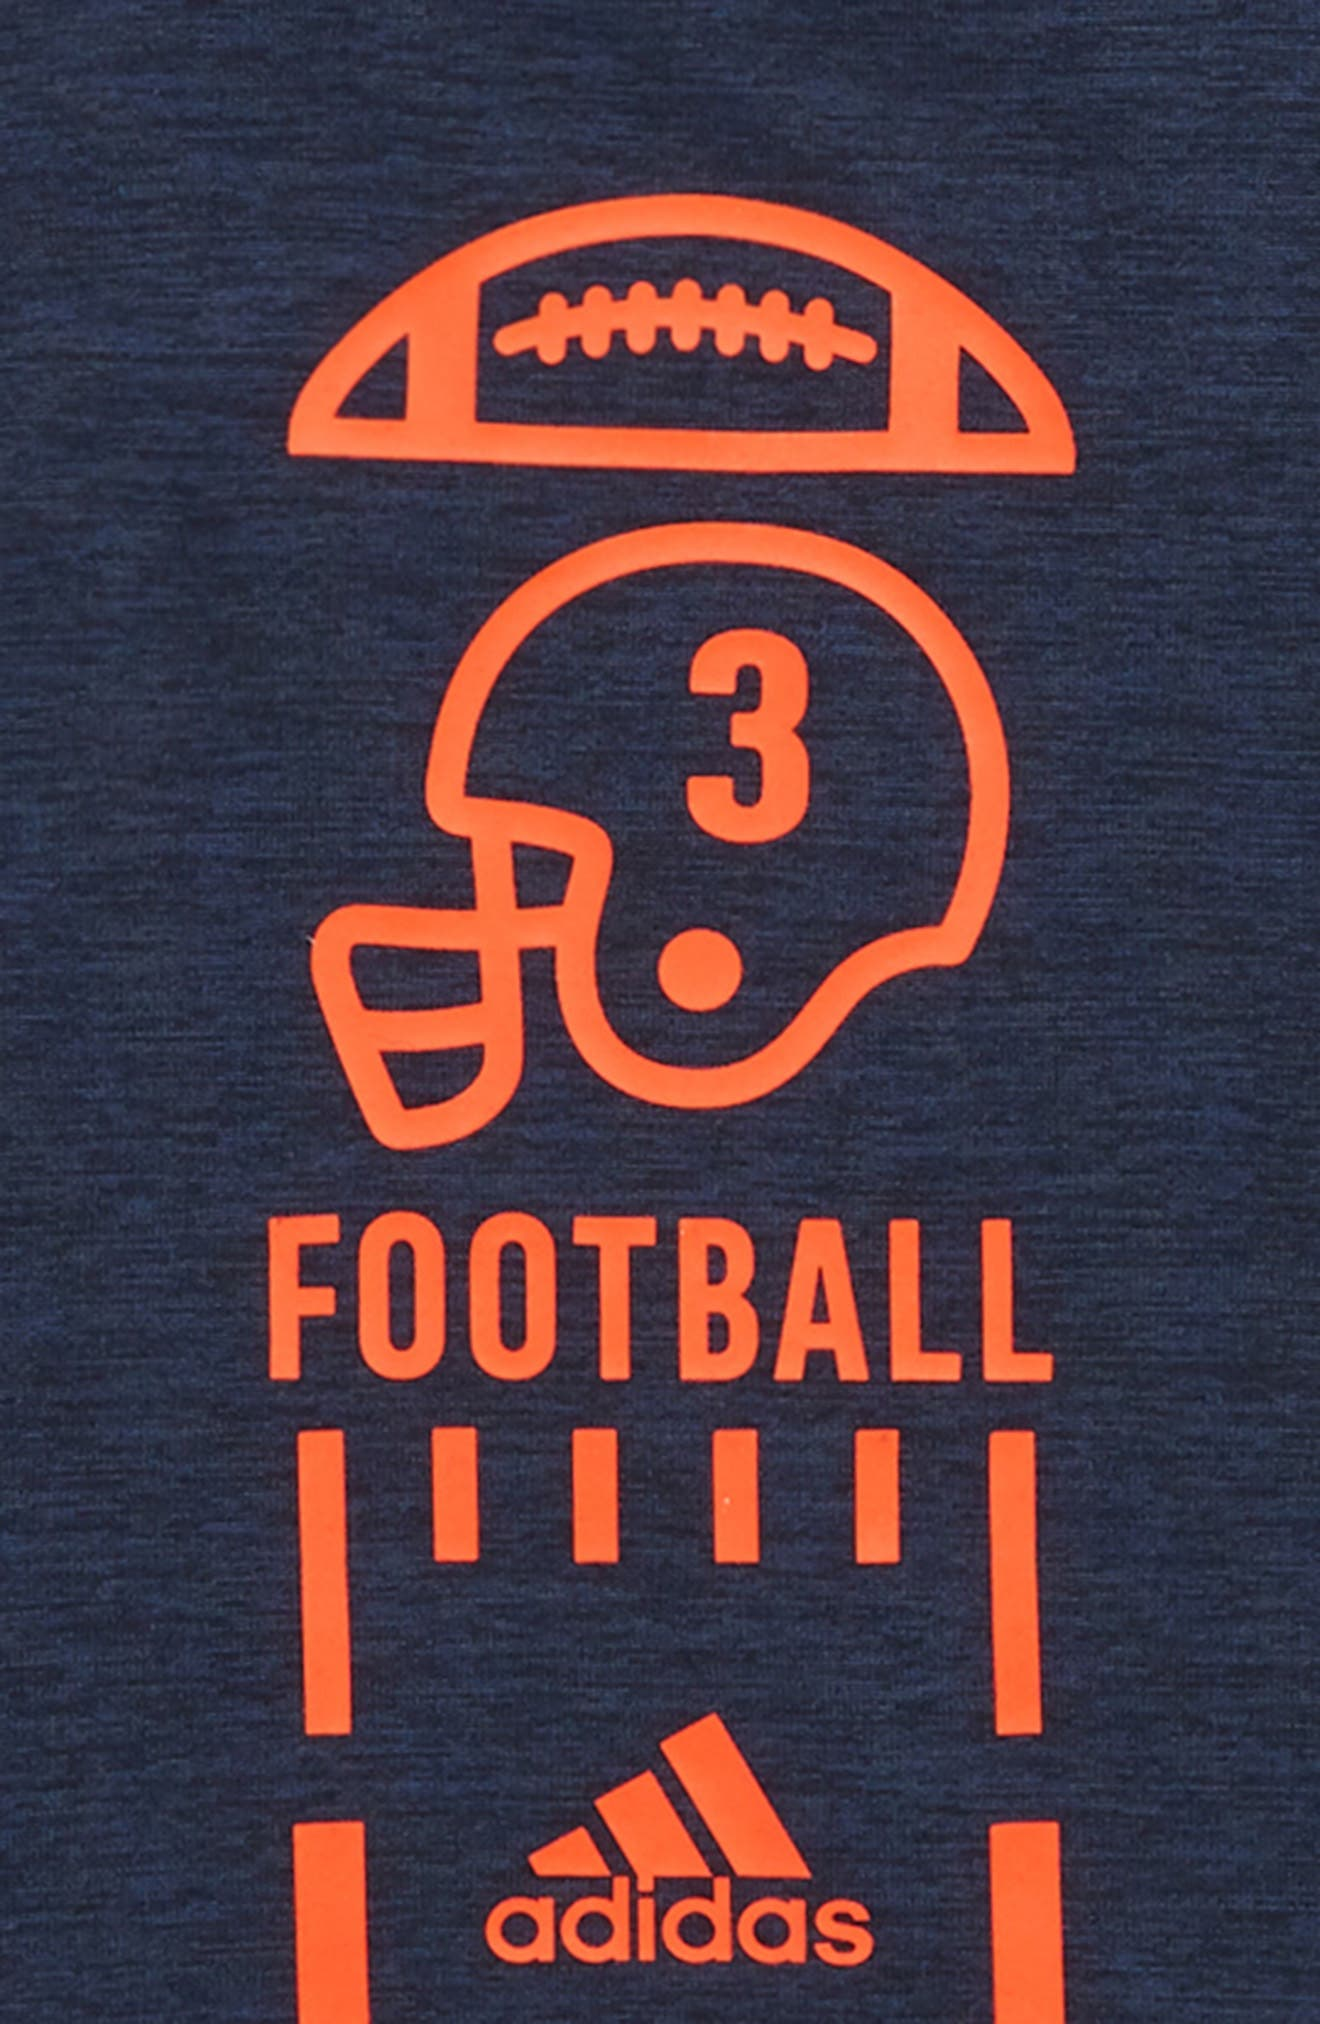 Football Vertical Collage T-Shirt,                             Alternate thumbnail 2, color,                             Navy